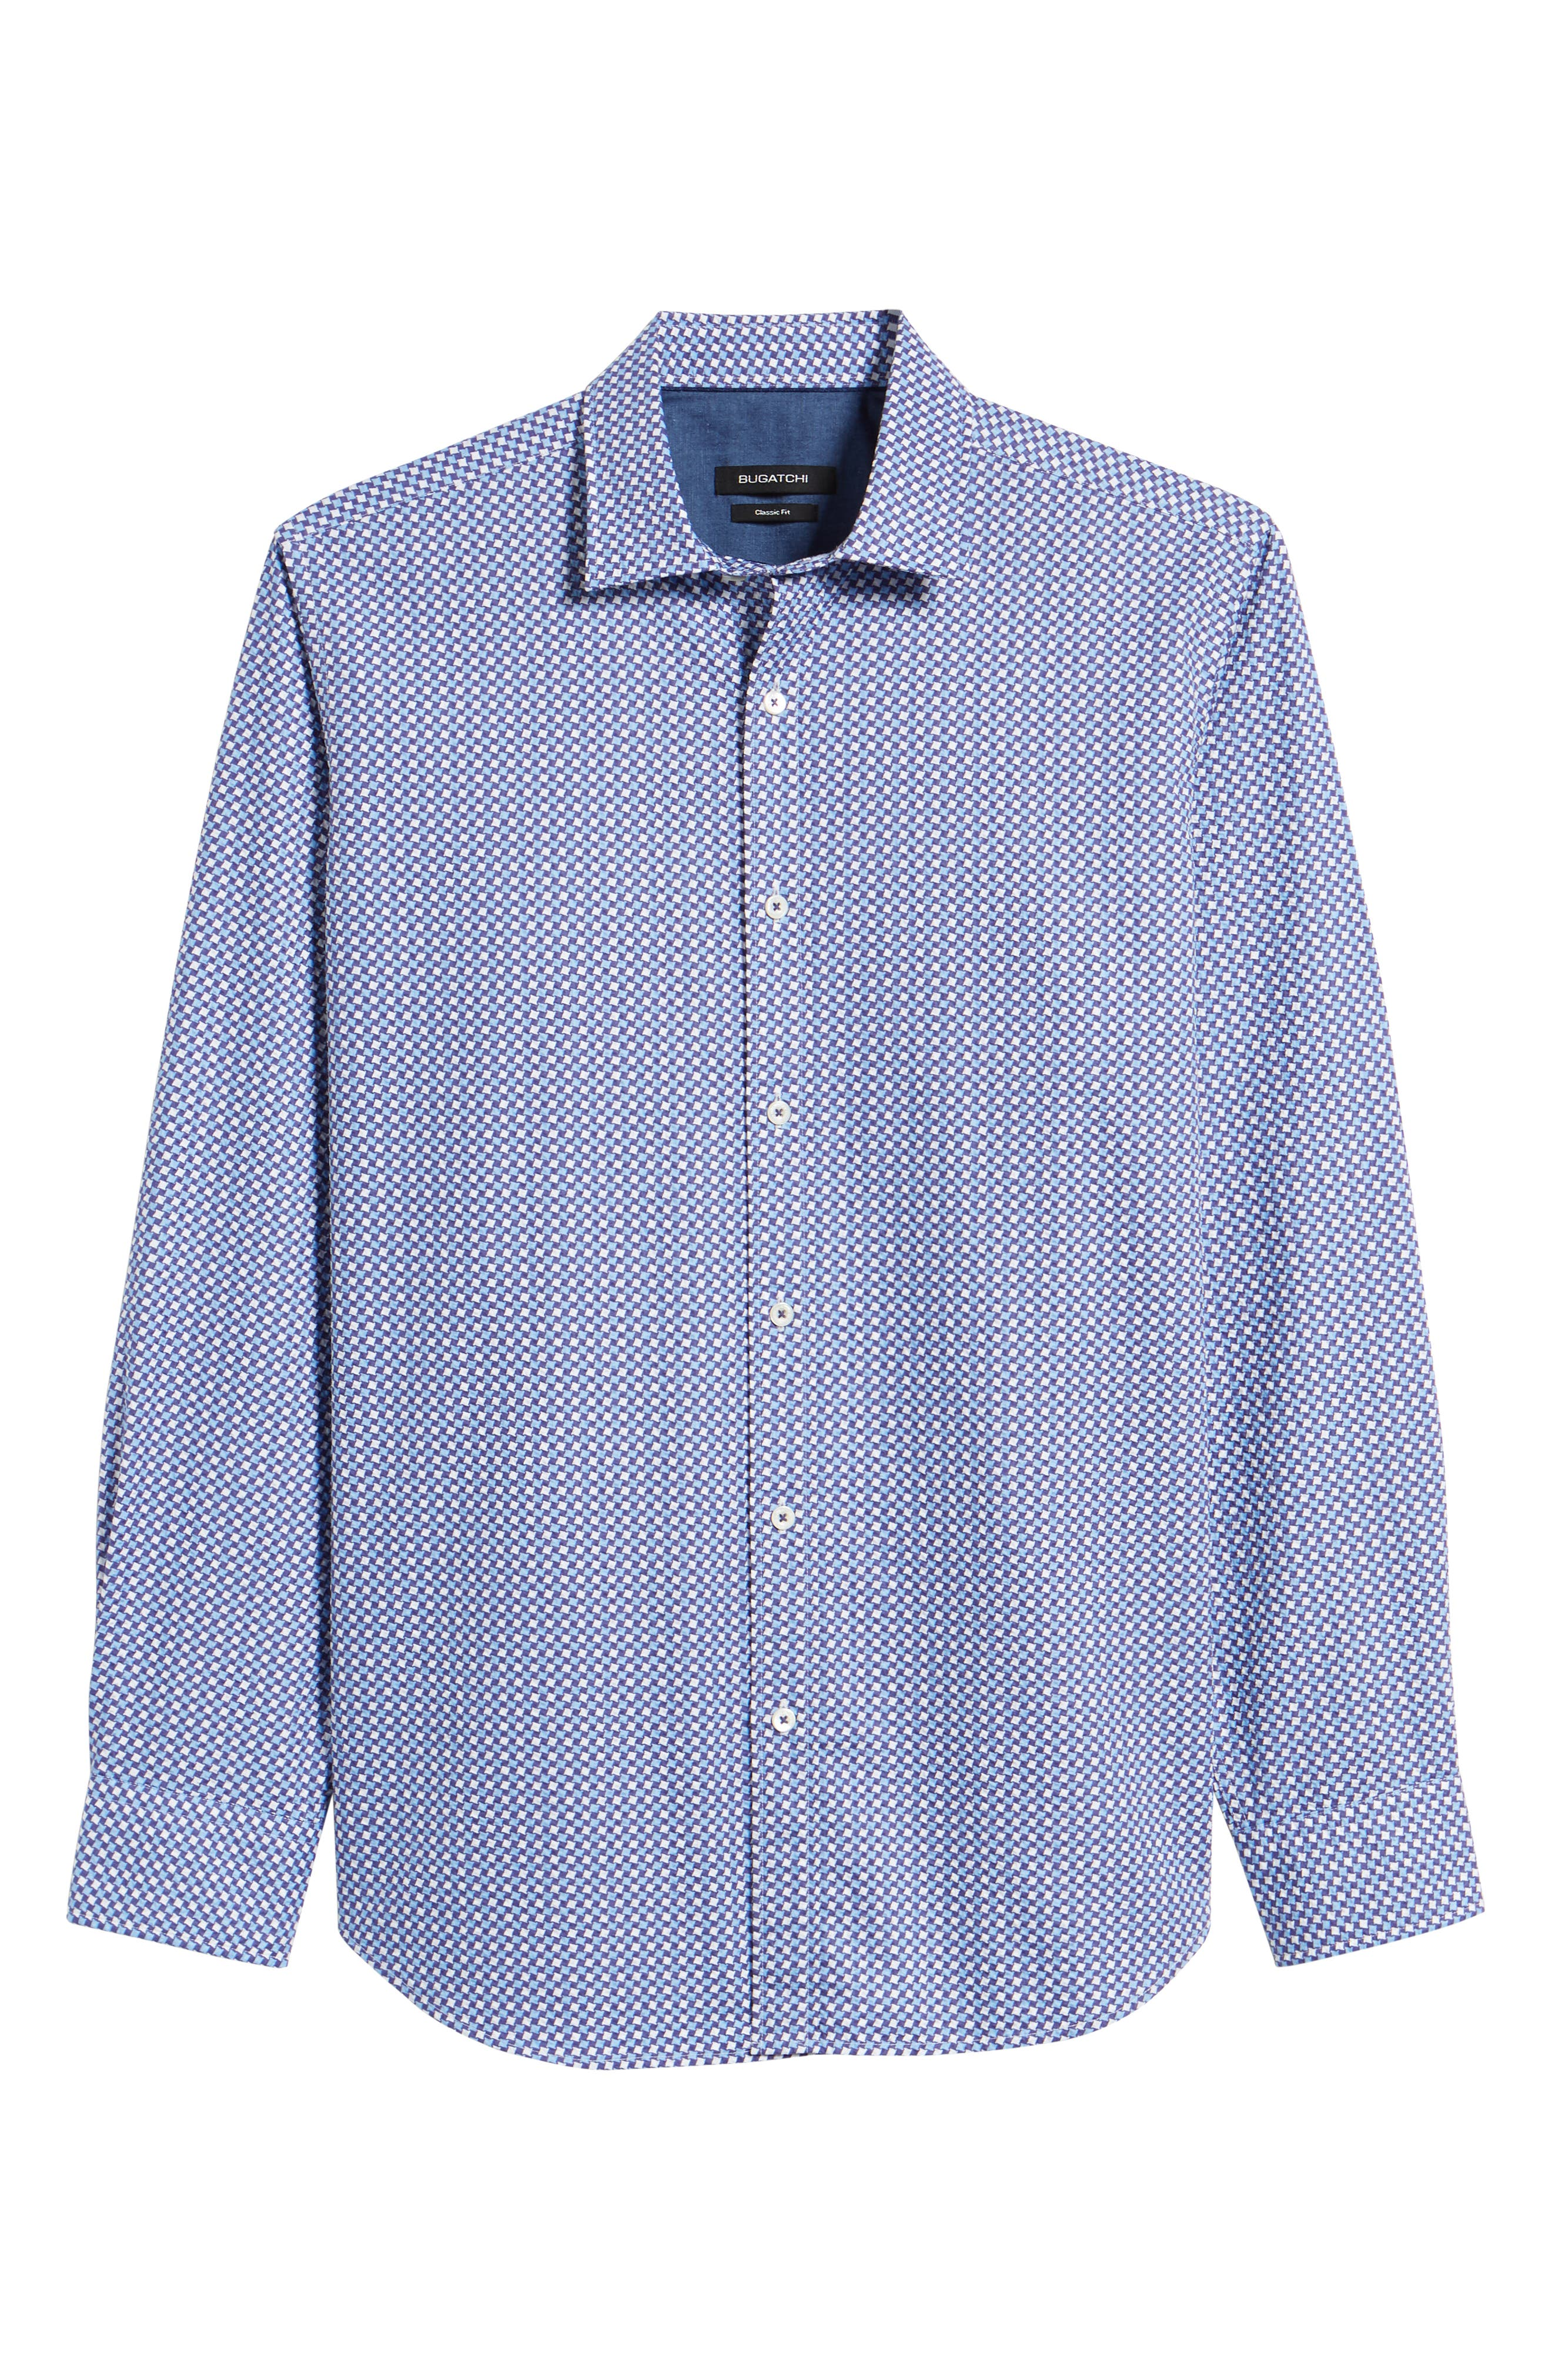 Classic Fit Print Seersucker Sport Shirt,                             Alternate thumbnail 6, color,                             CLASSIC BLUE